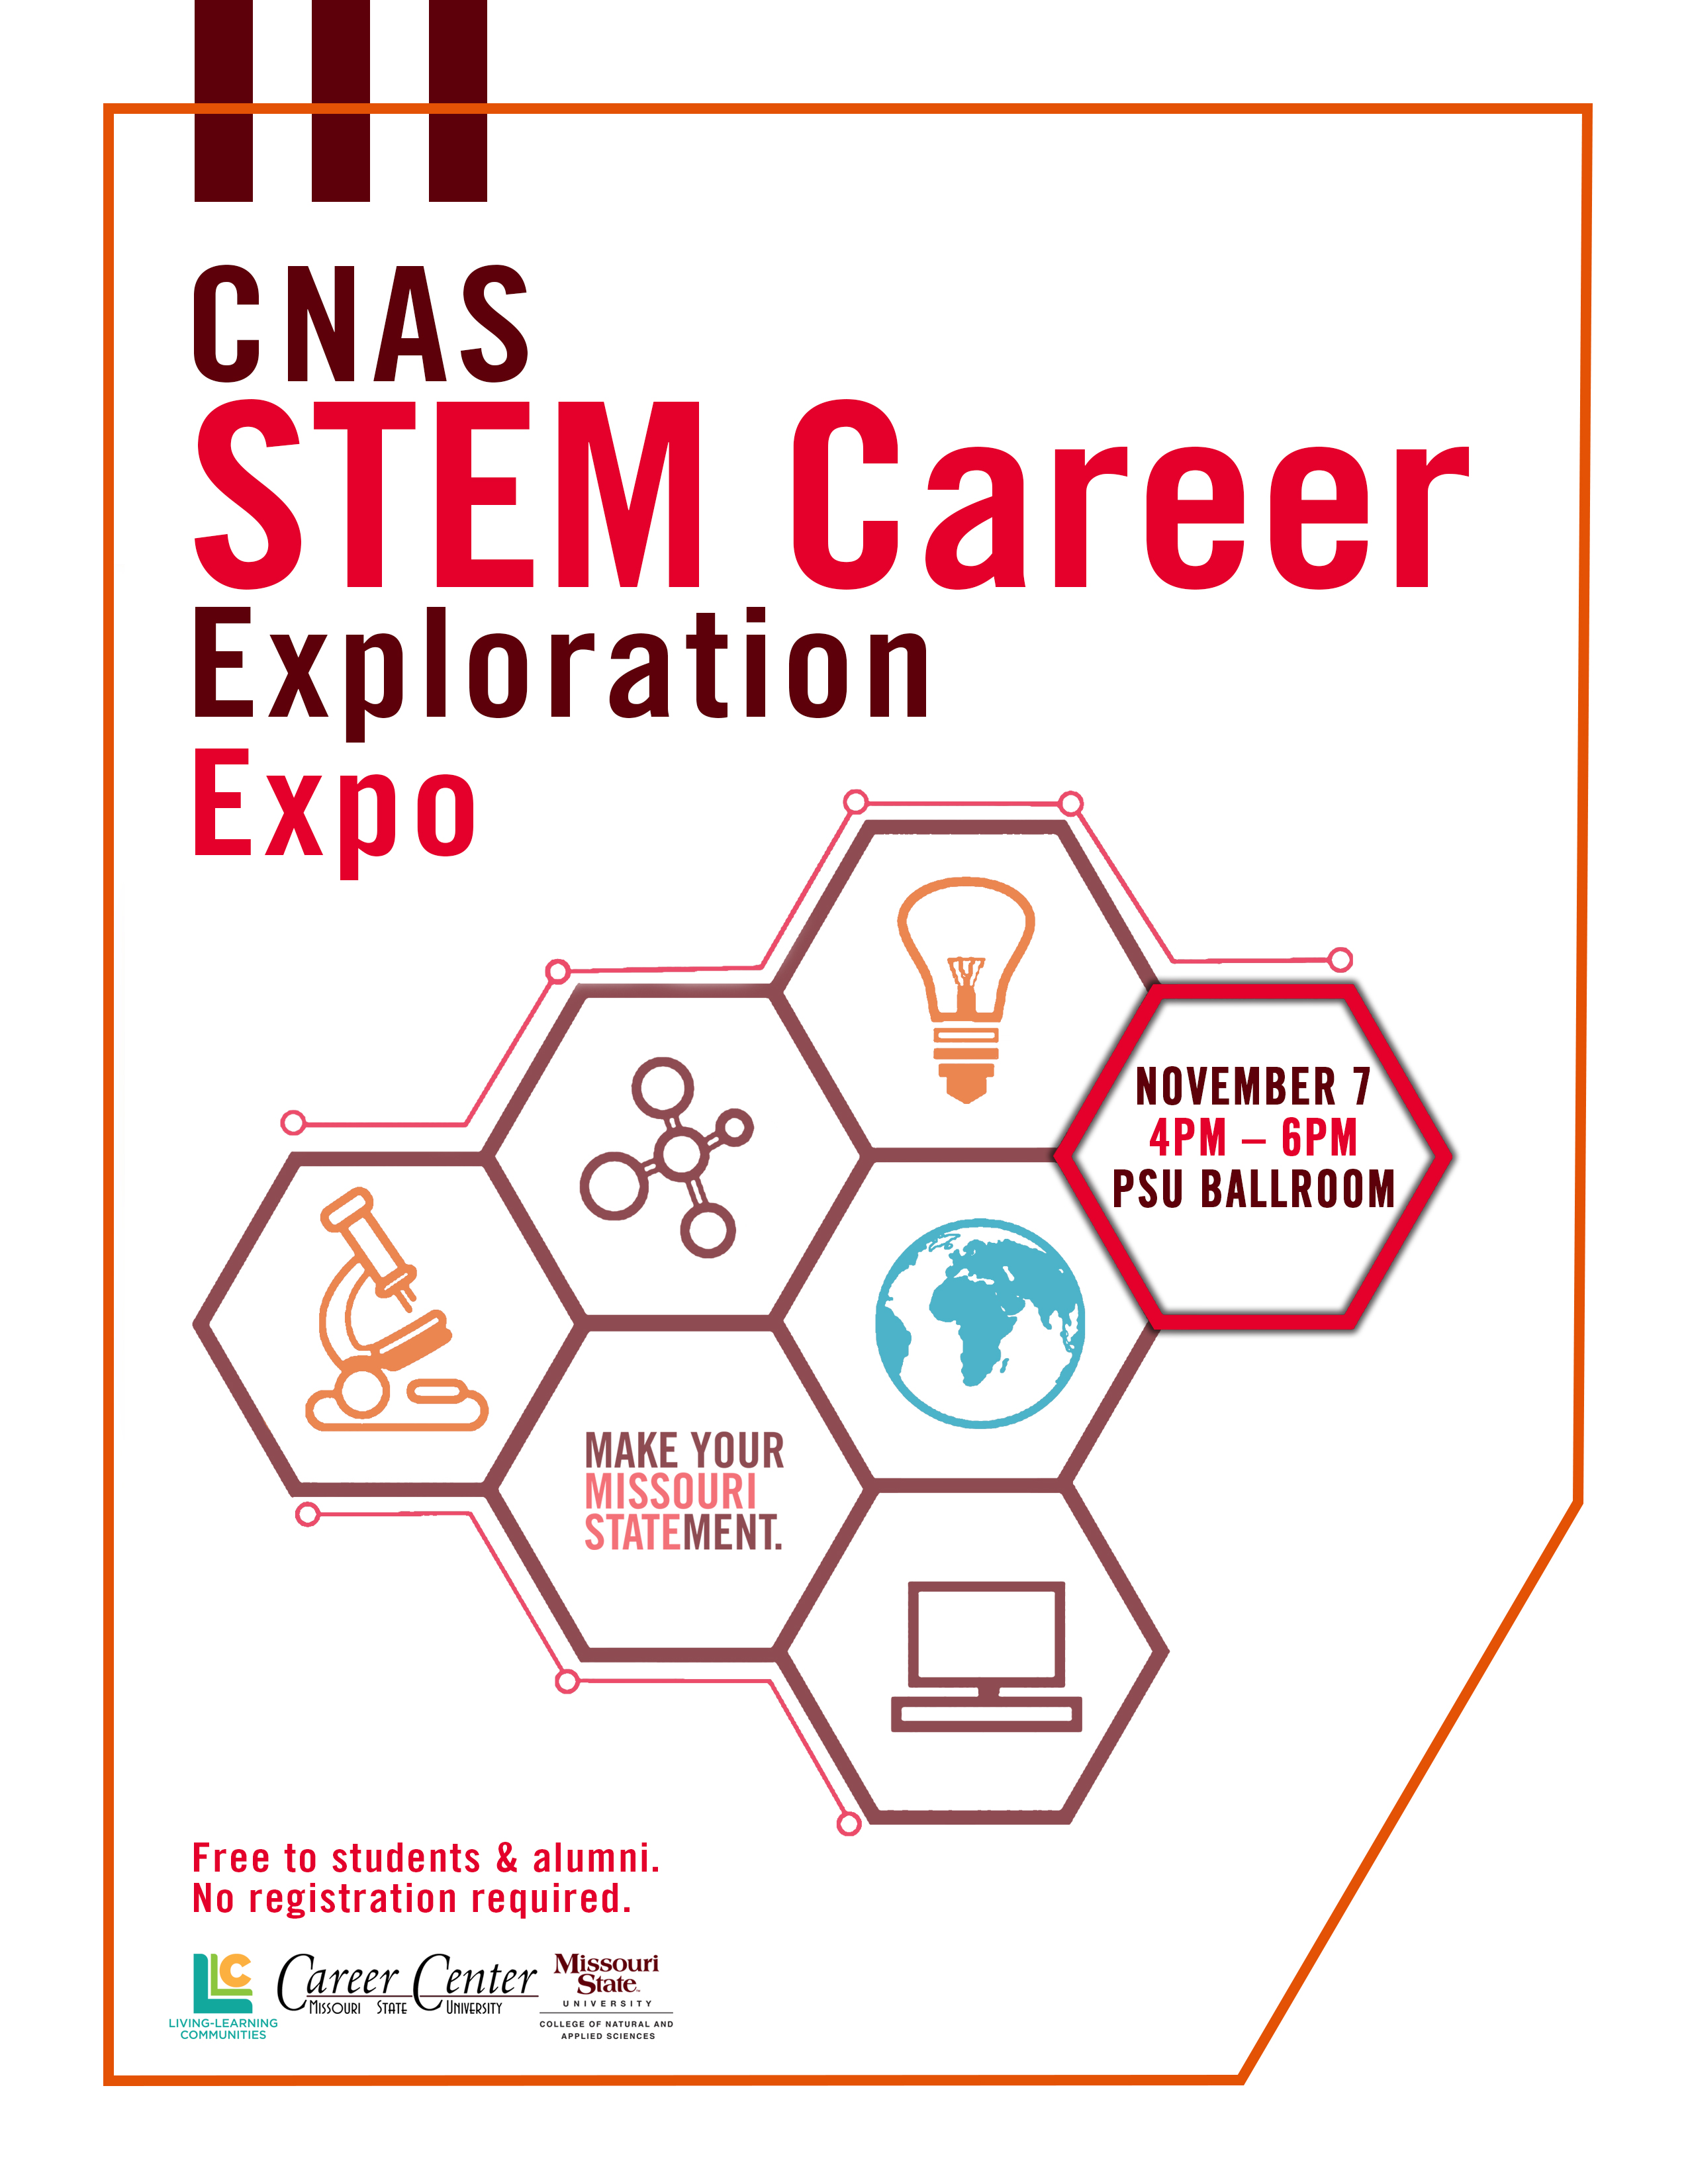 CNAS STEM Career Exploration Expo